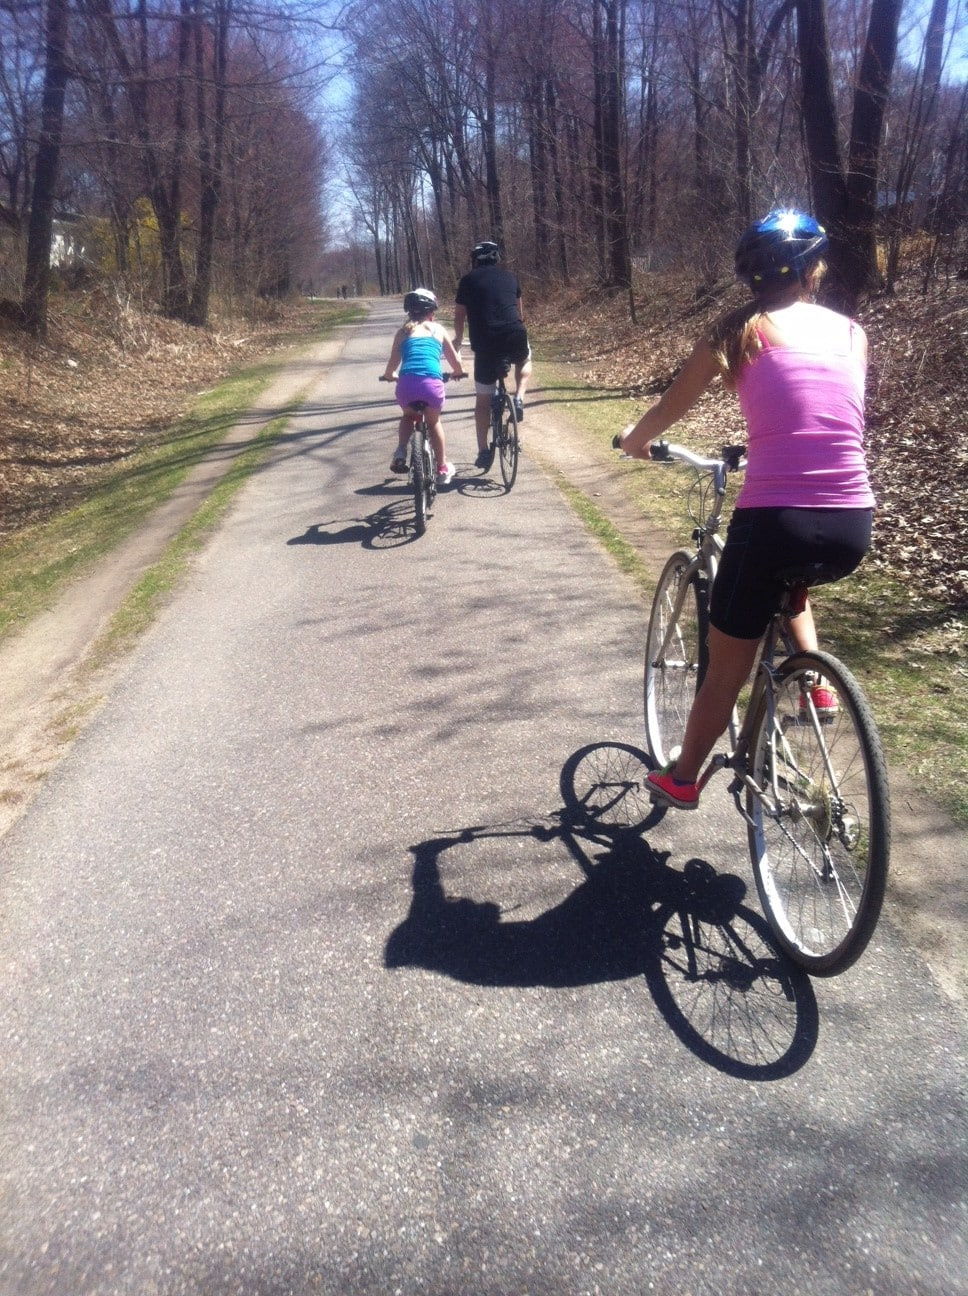 Terry dad out on the Burlington Bike path with his daughters in tow.